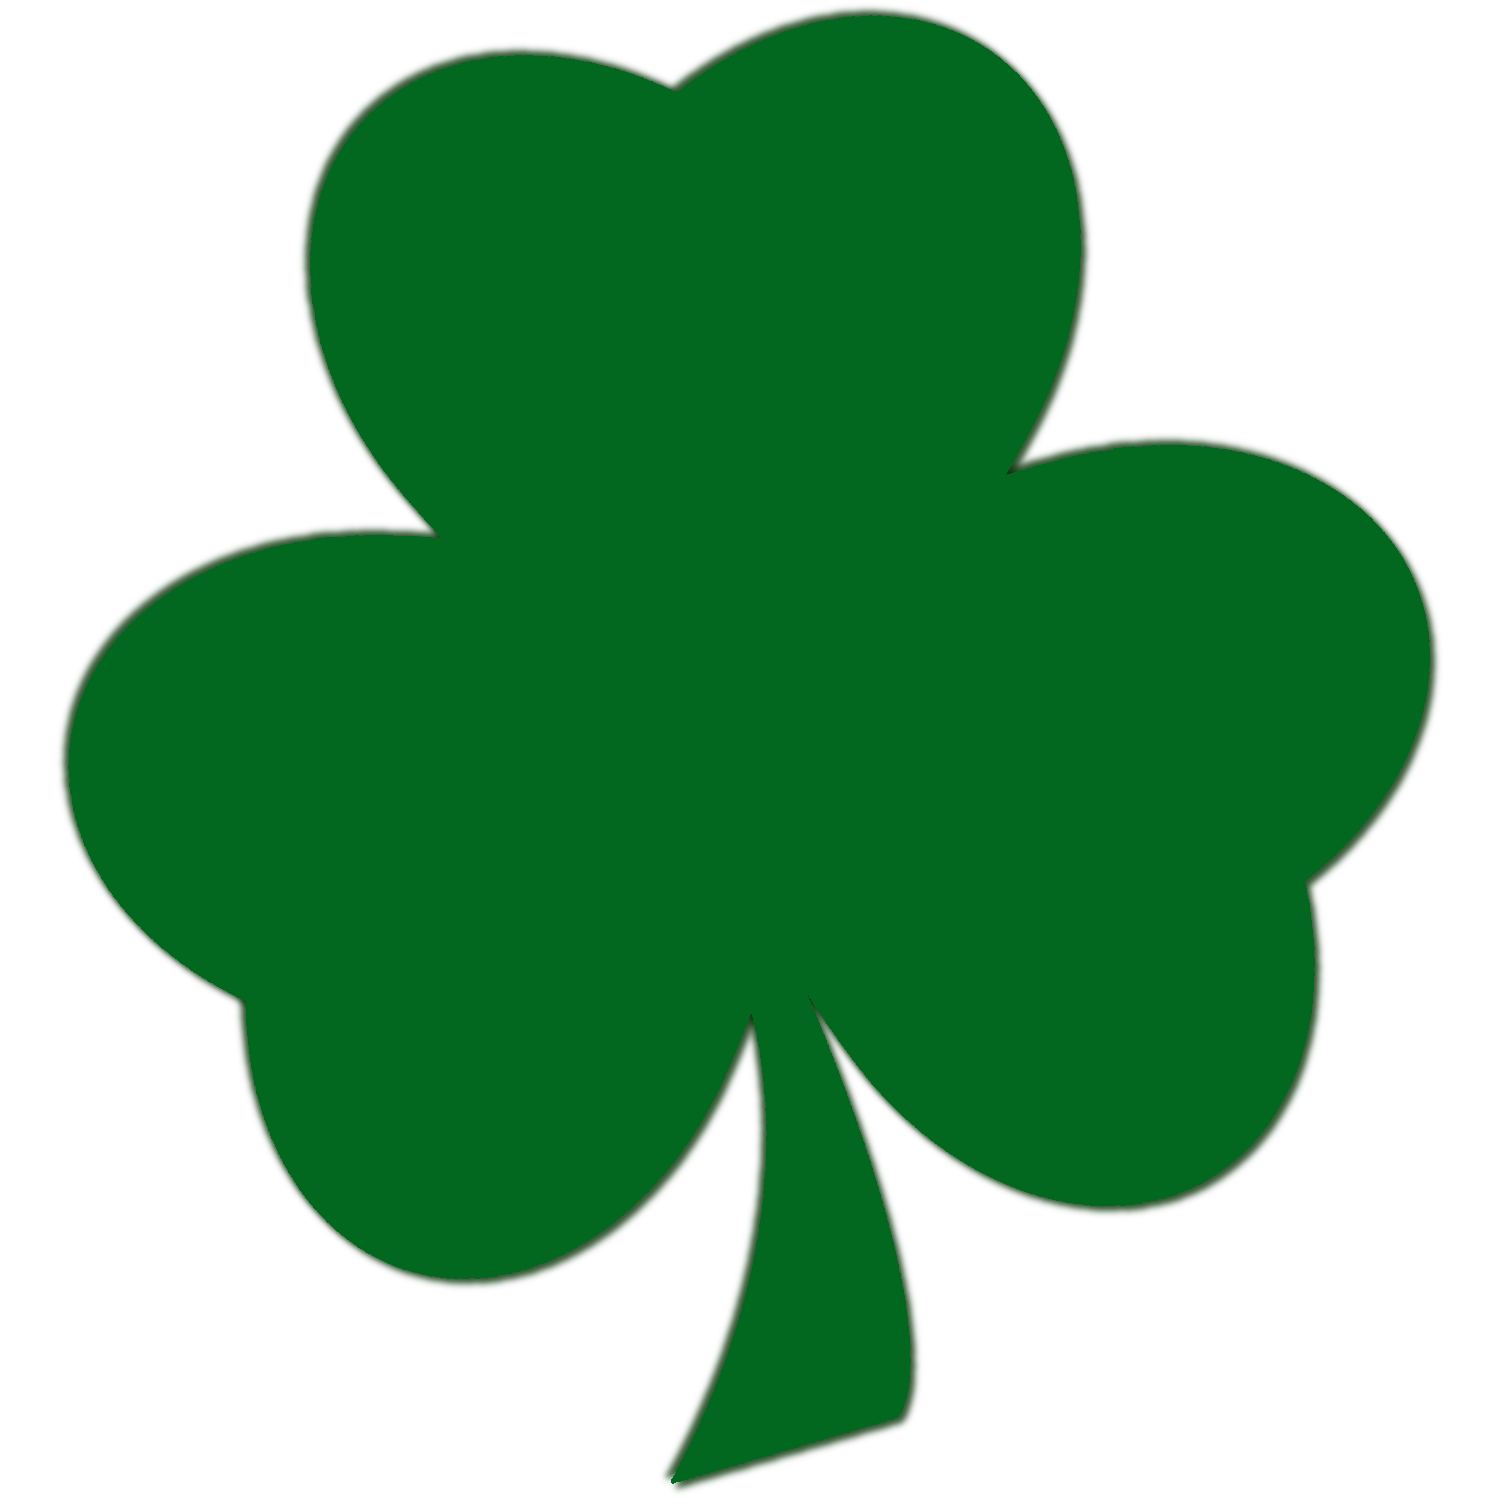 Irish Clover Clipart - Clipart Kid